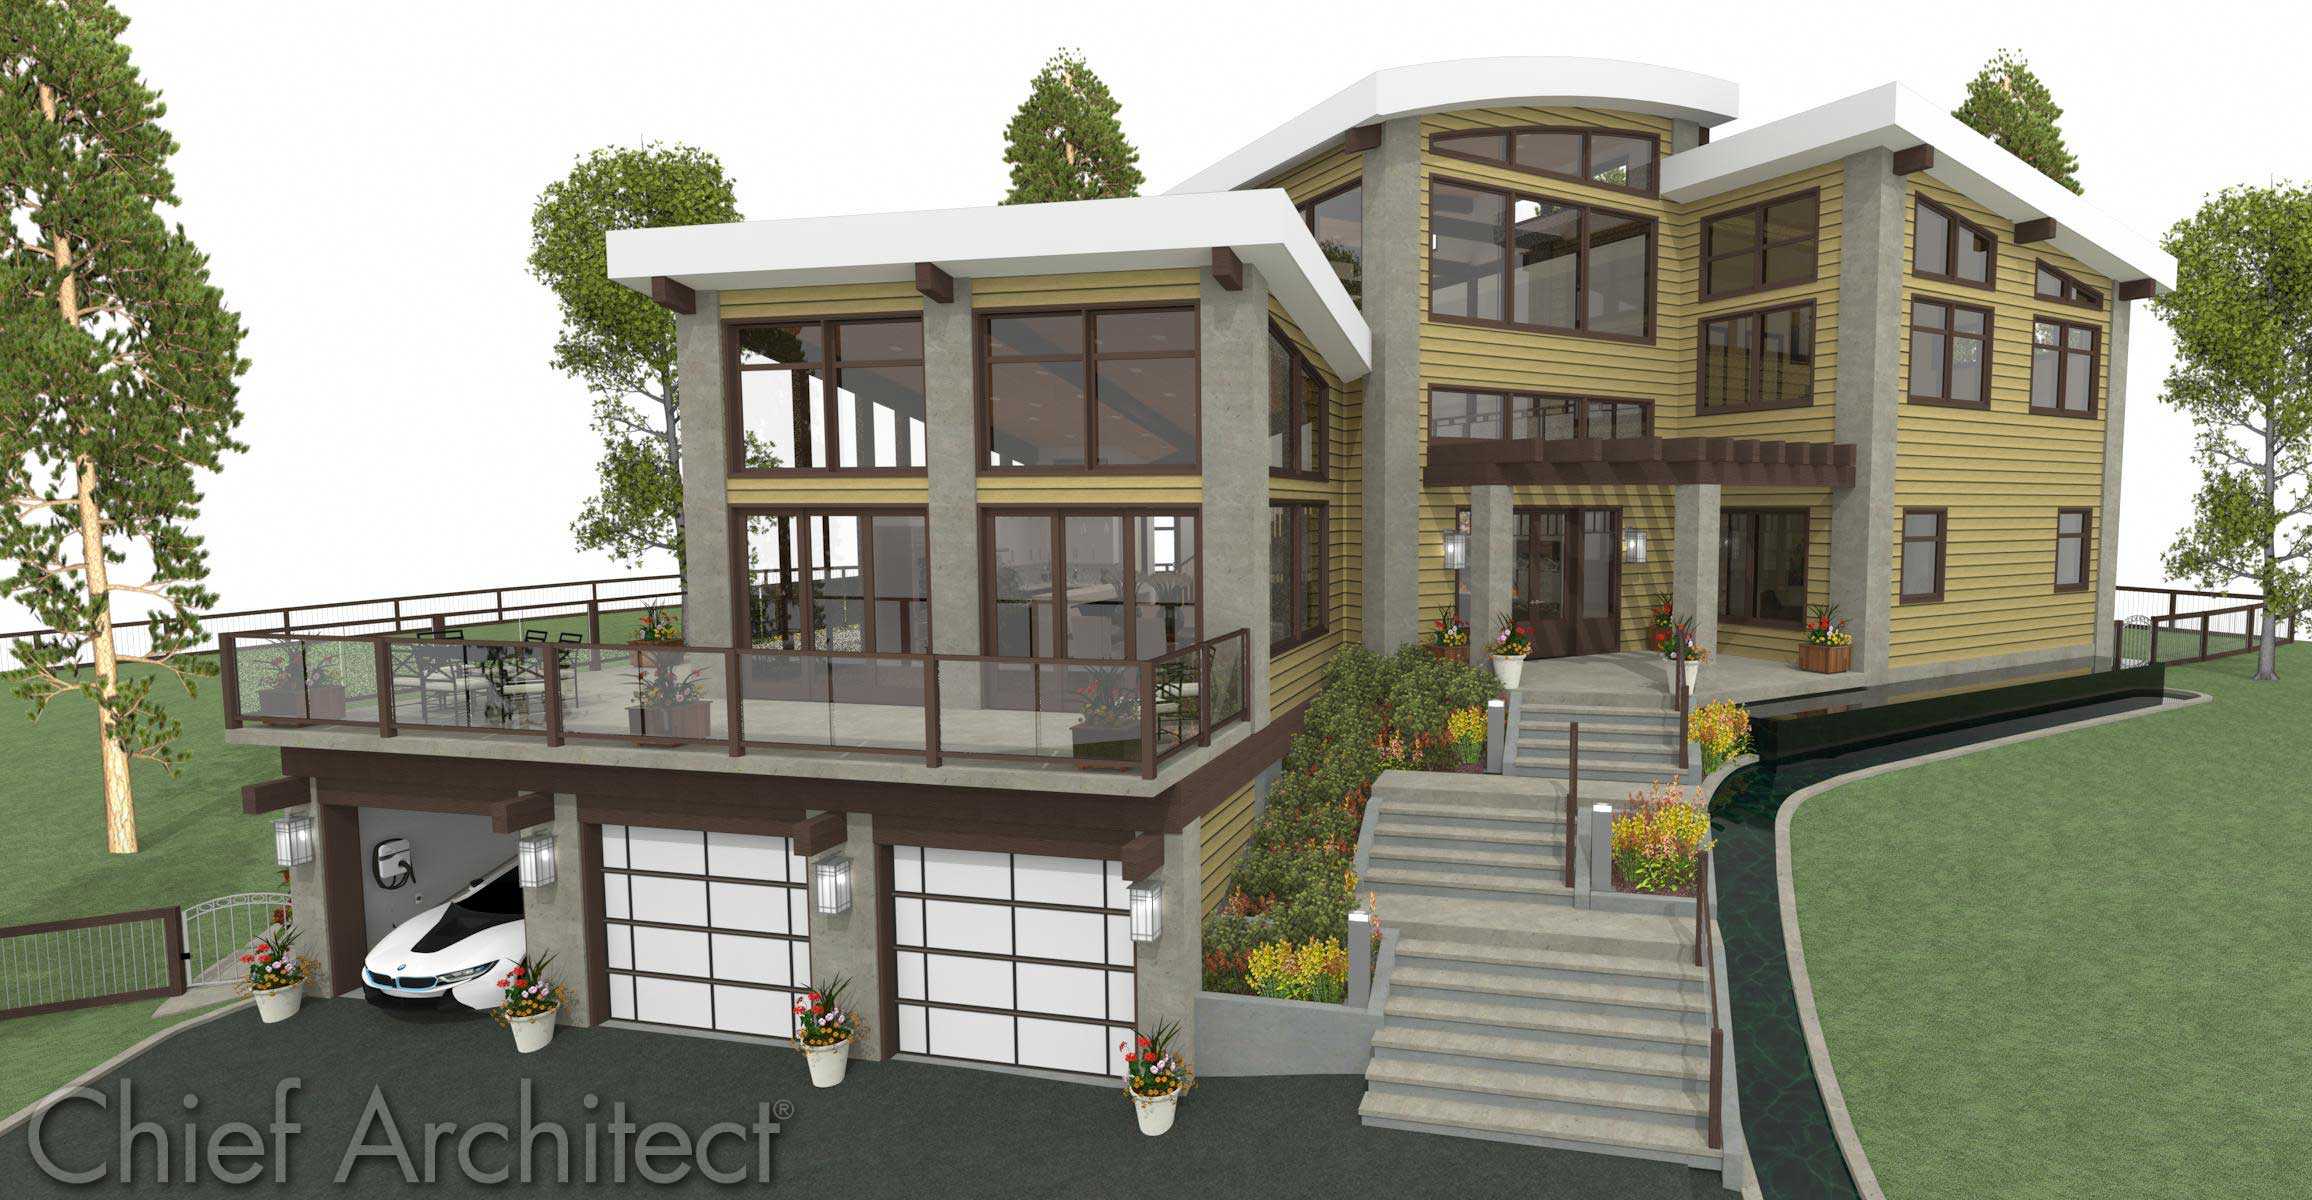 Architecture Design 3d chief architect home design software - samples gallery